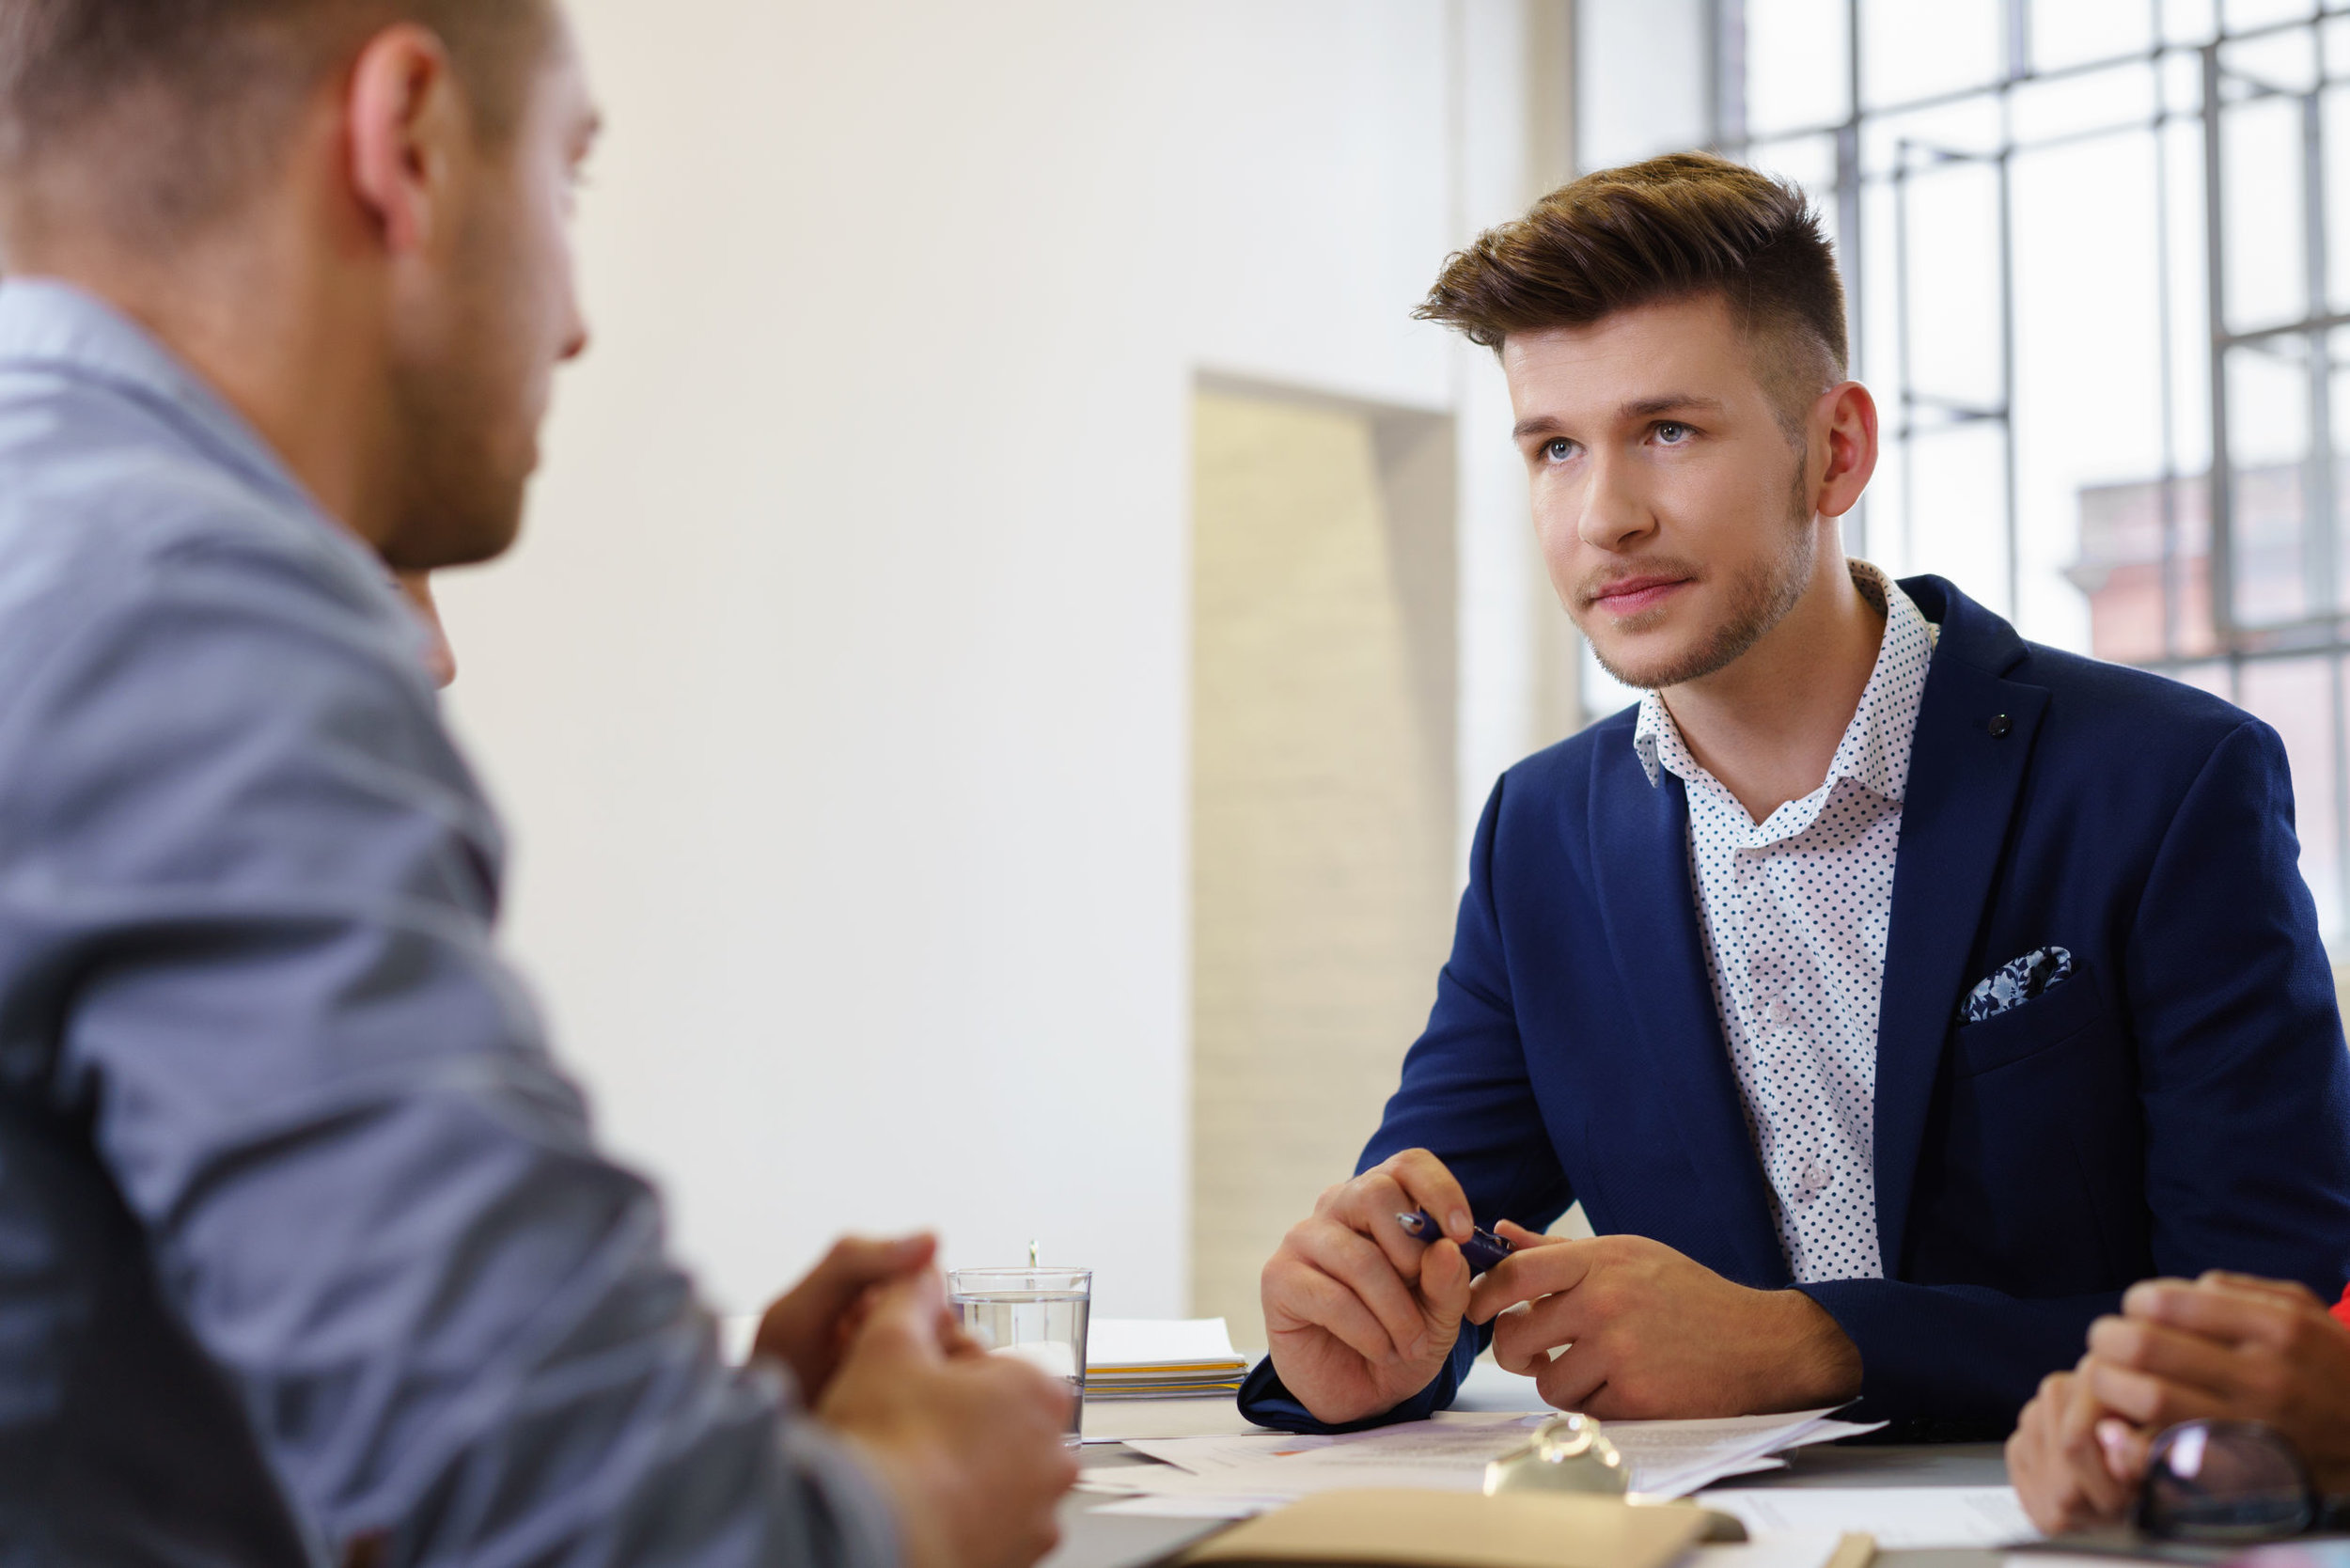 A popular trend that employers are testing to improve their listening active skills is setting a talk-to-listen ratio.